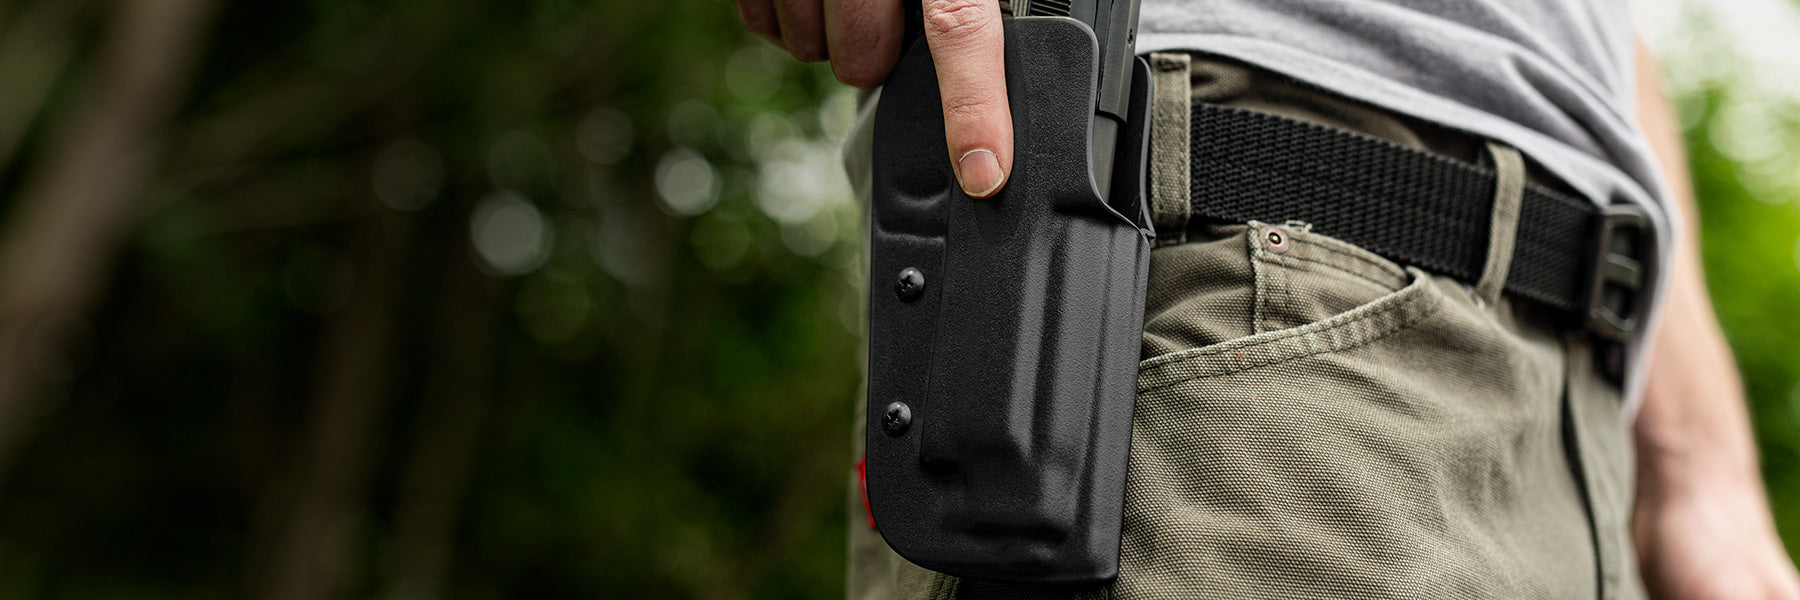 Blade-Tech - Featured Image - Free Mag Pouch